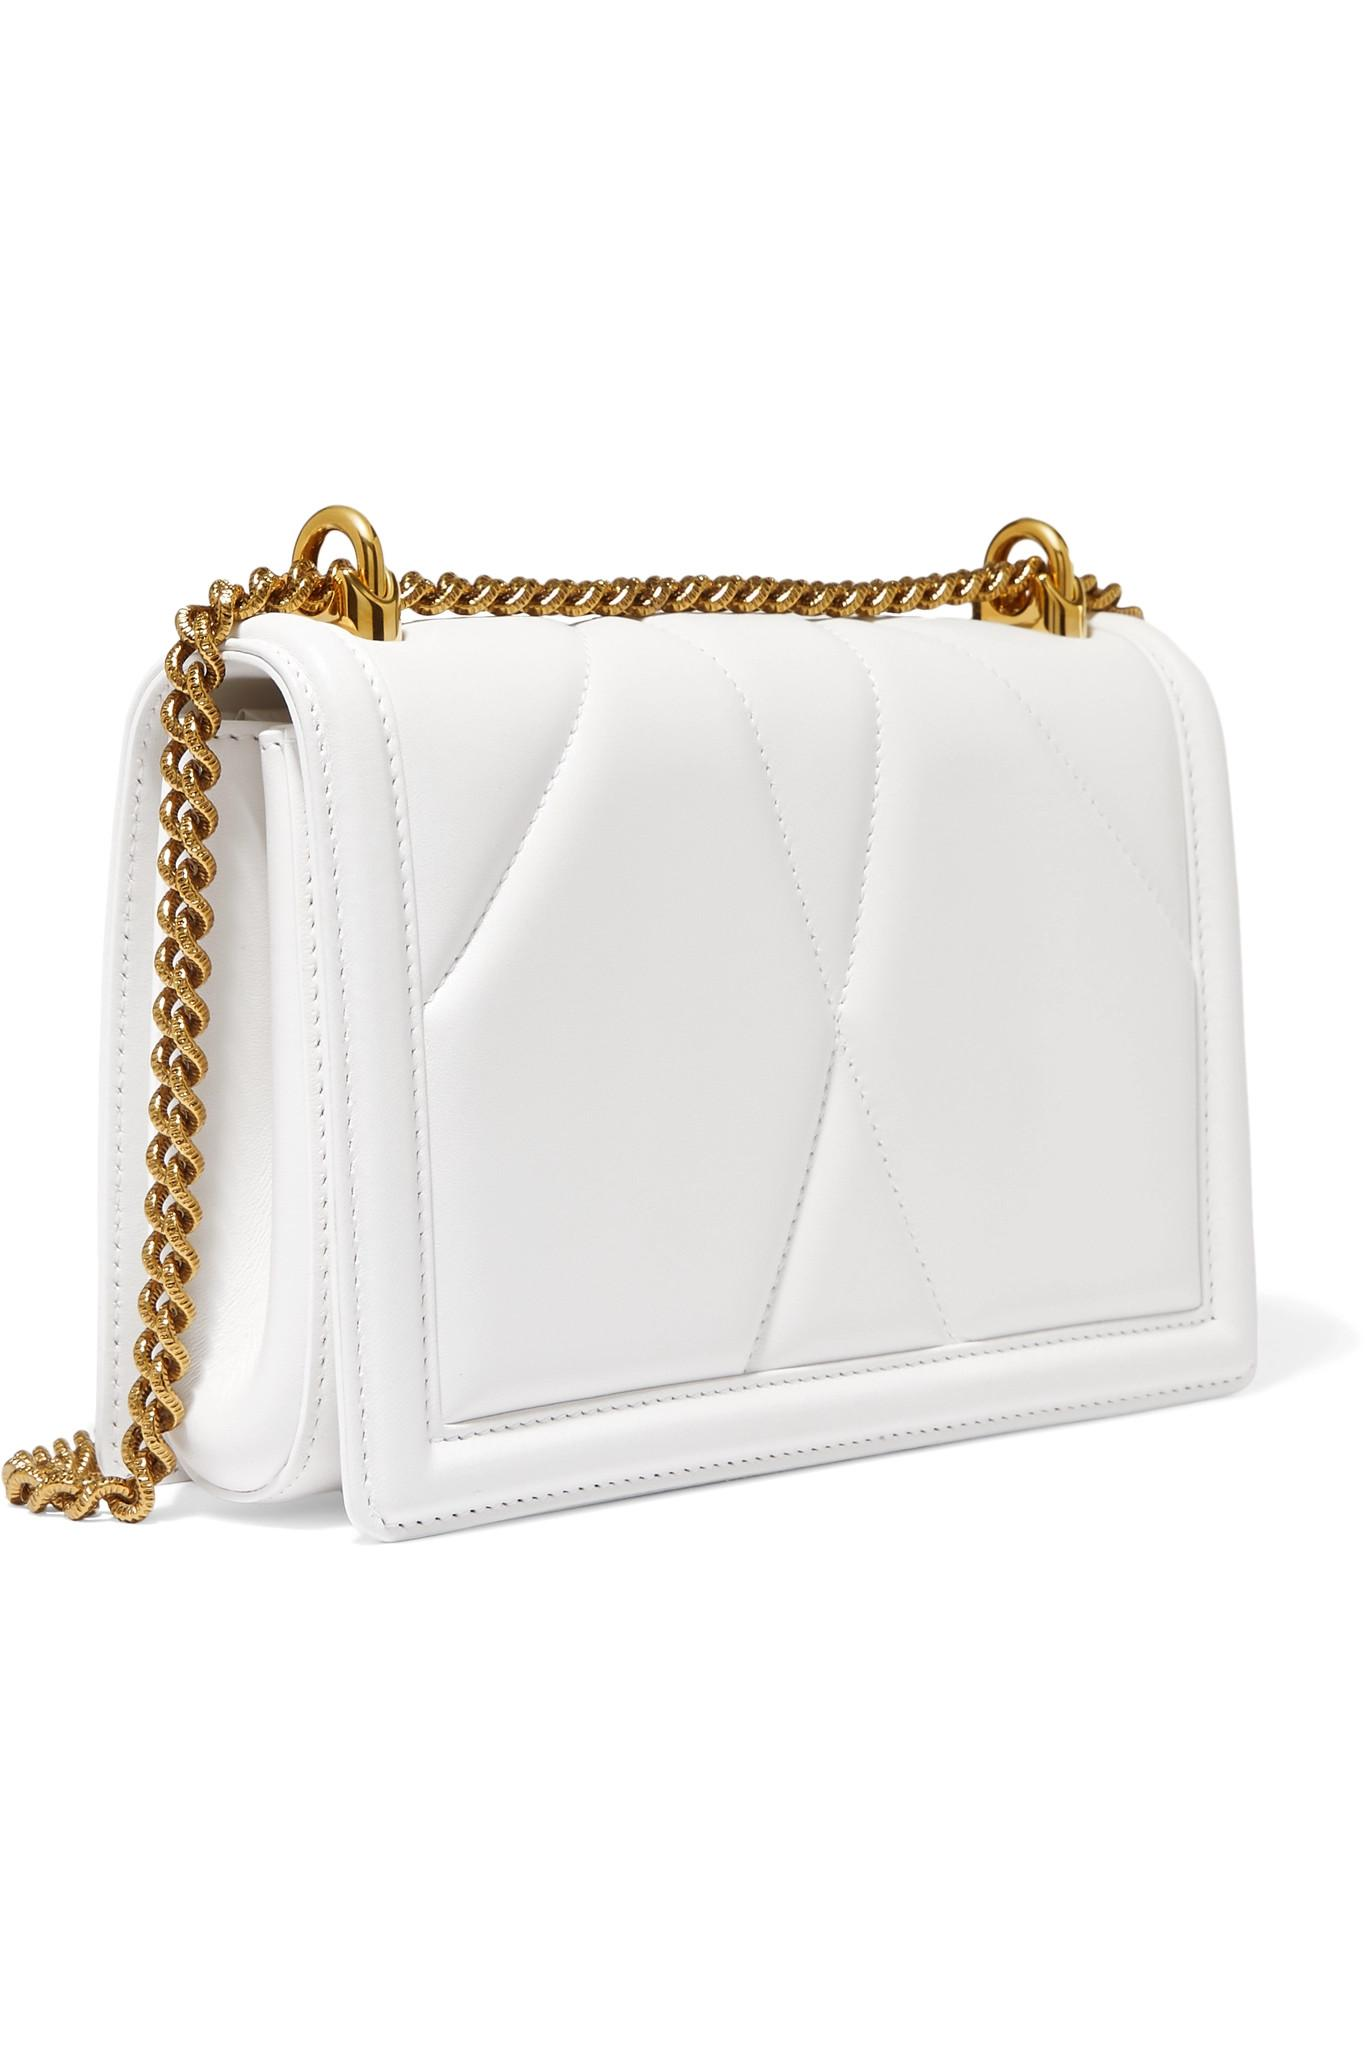 Lyst - Dolce   Gabbana Devotion Mini Embellished Quilted Leather ... 7bee05e779db5